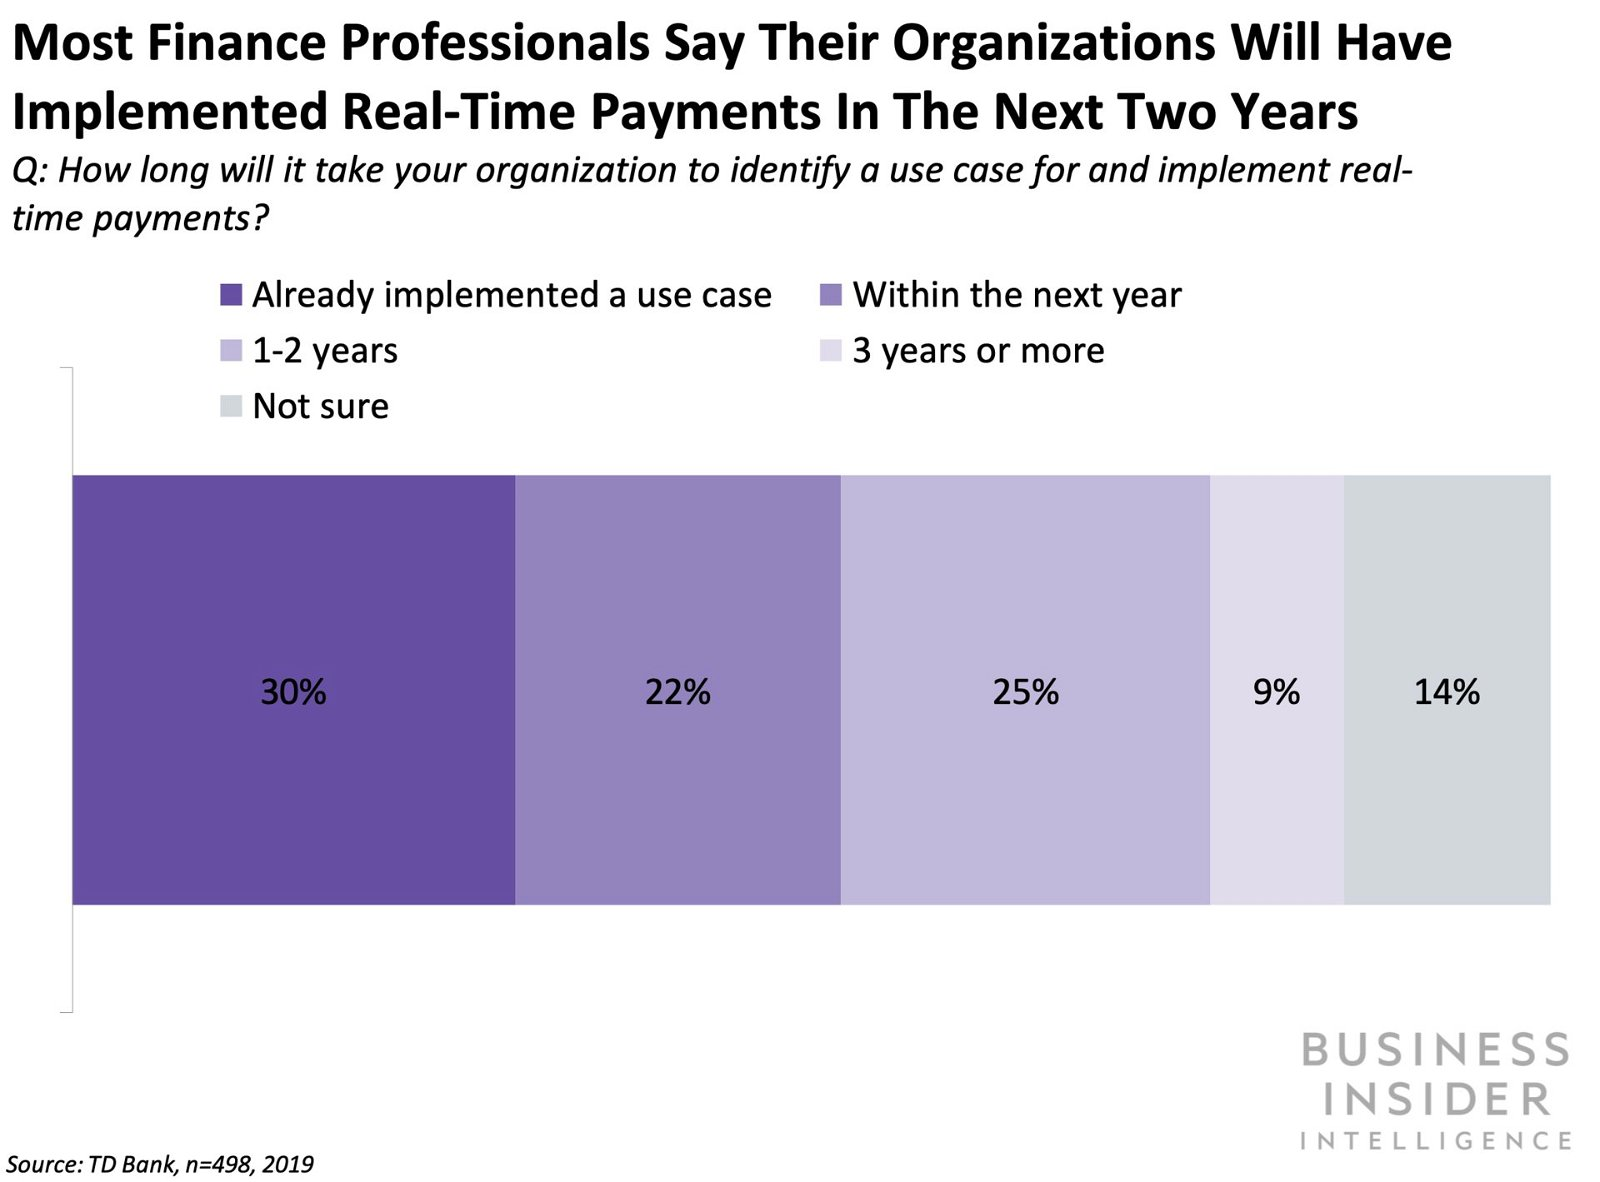 77% of financial professionals expect their organizations to implement a use case for RTP in the next two years.